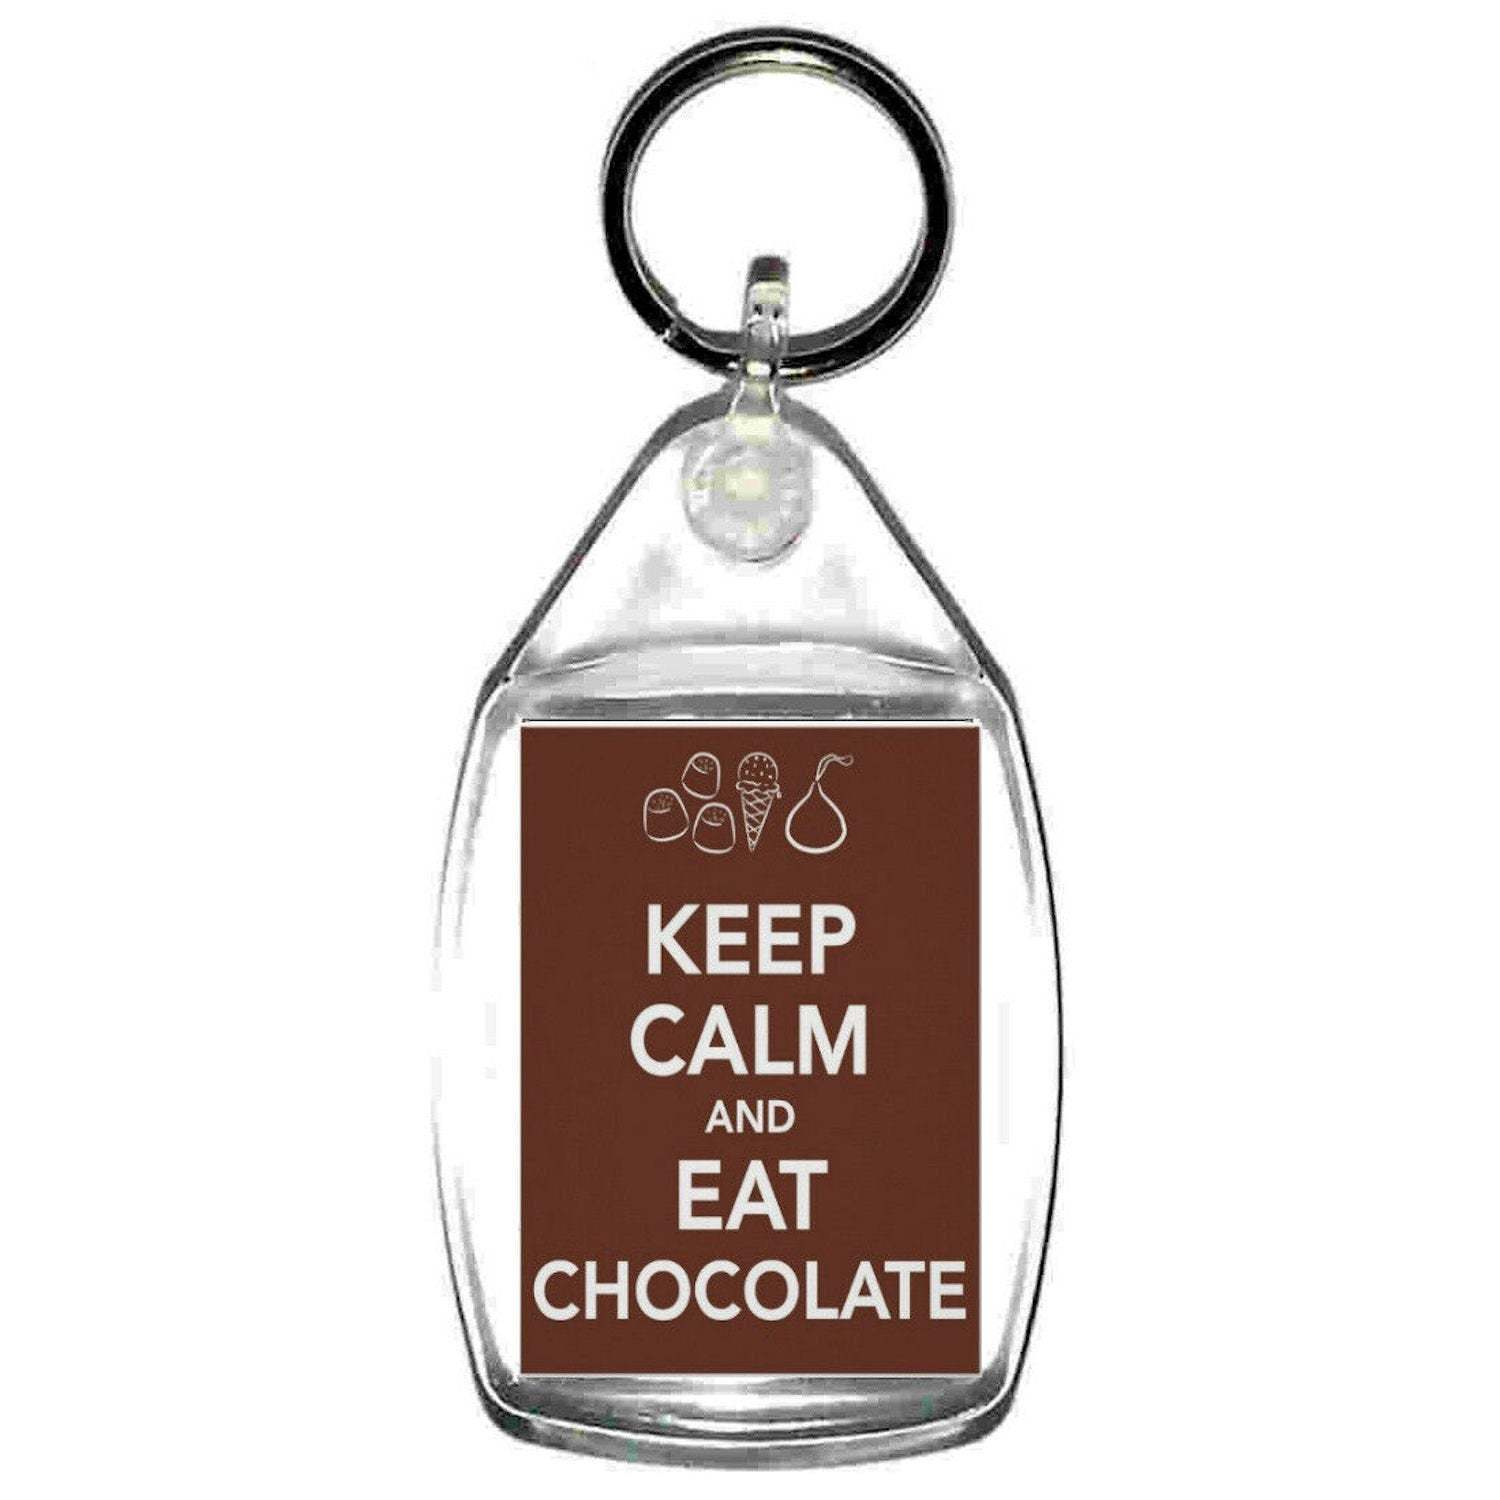 keyring double sided keep calm eat chocolate design, keychain